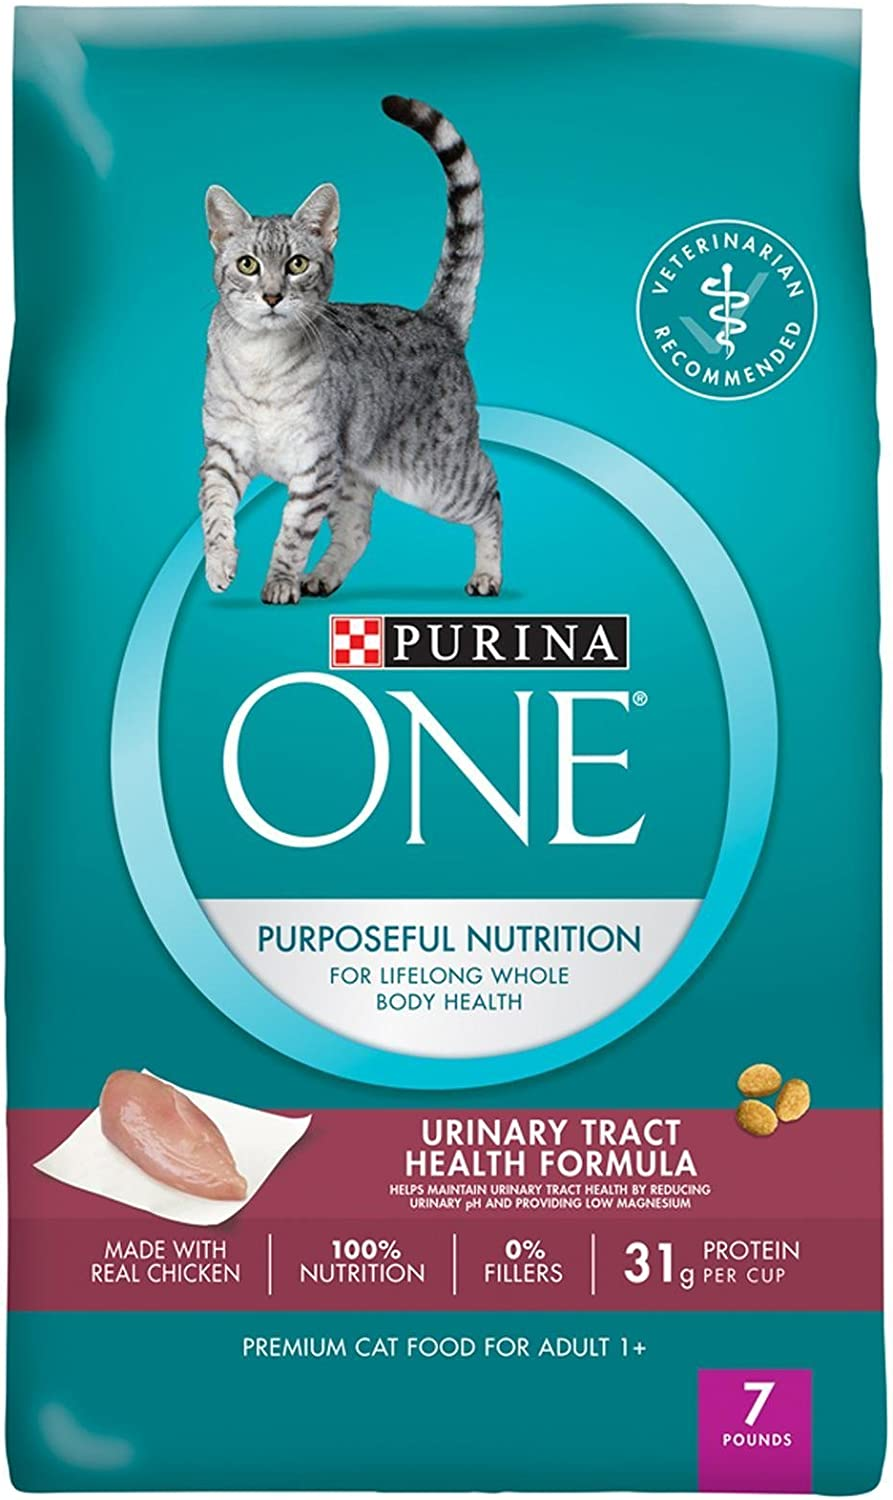 Purina ONE At the price Purposeful 4 years warranty Nutrition Dry Cat - Urinary Food Tra Adult